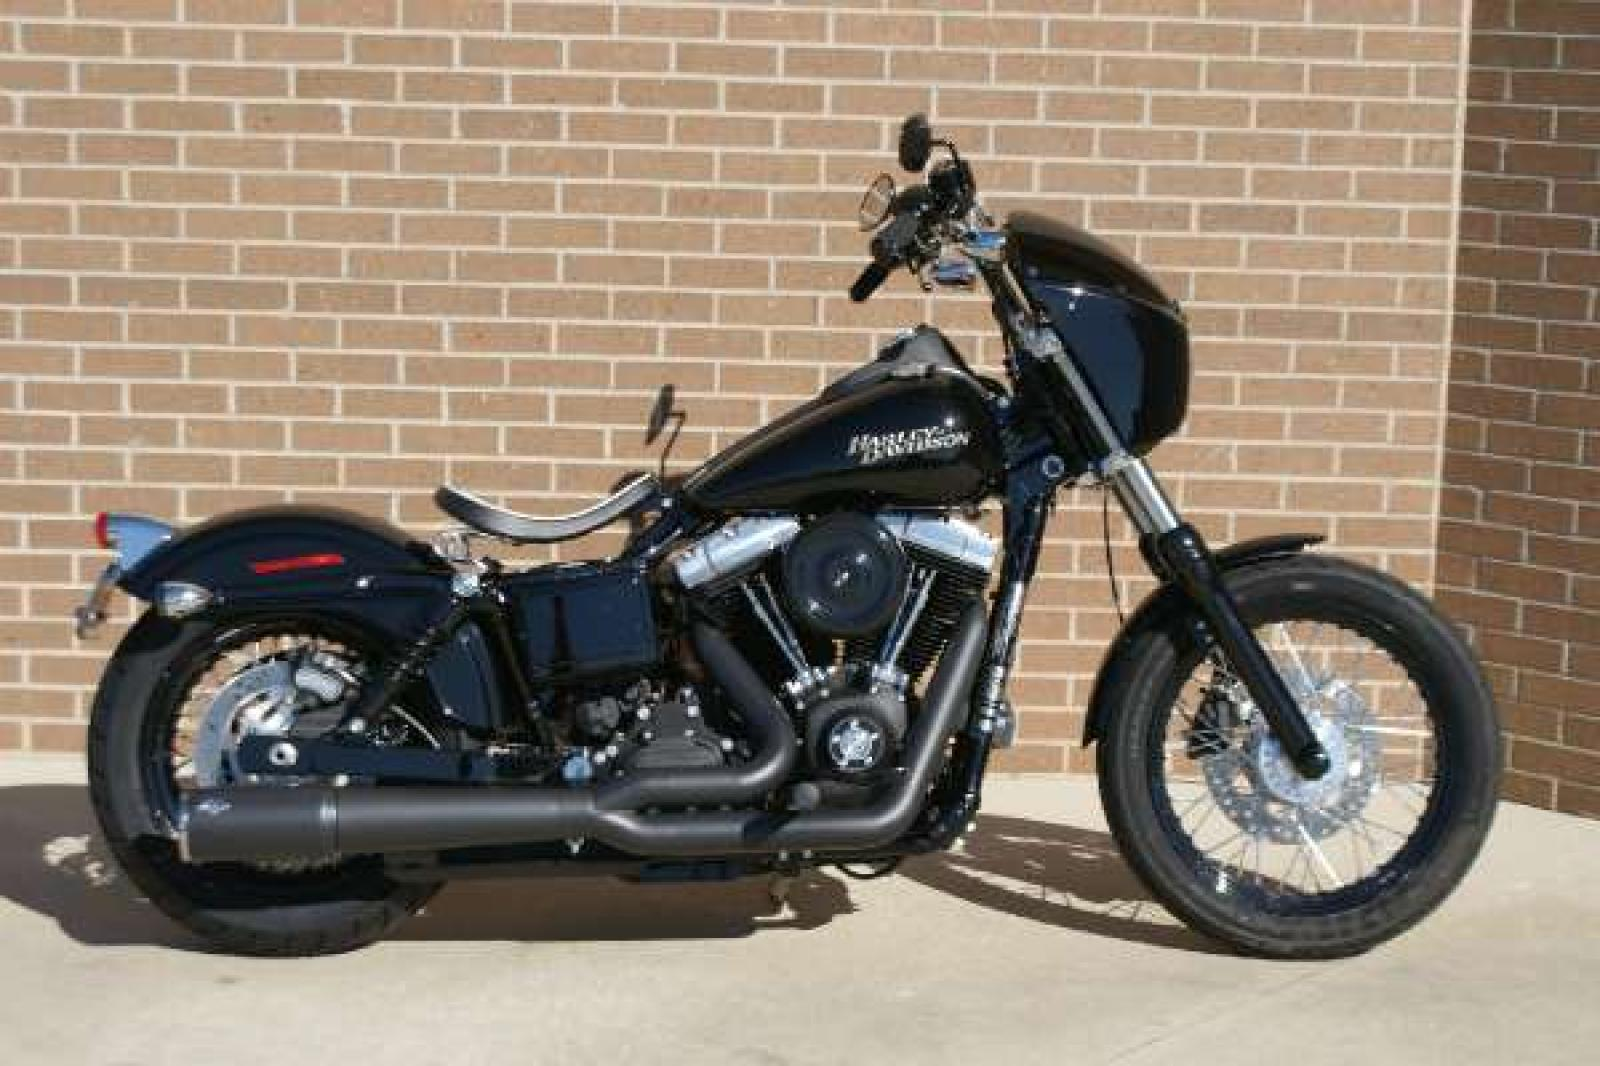 harley davidson harley davidson dyna street bob dark custom moto zombdrive com. Black Bedroom Furniture Sets. Home Design Ideas